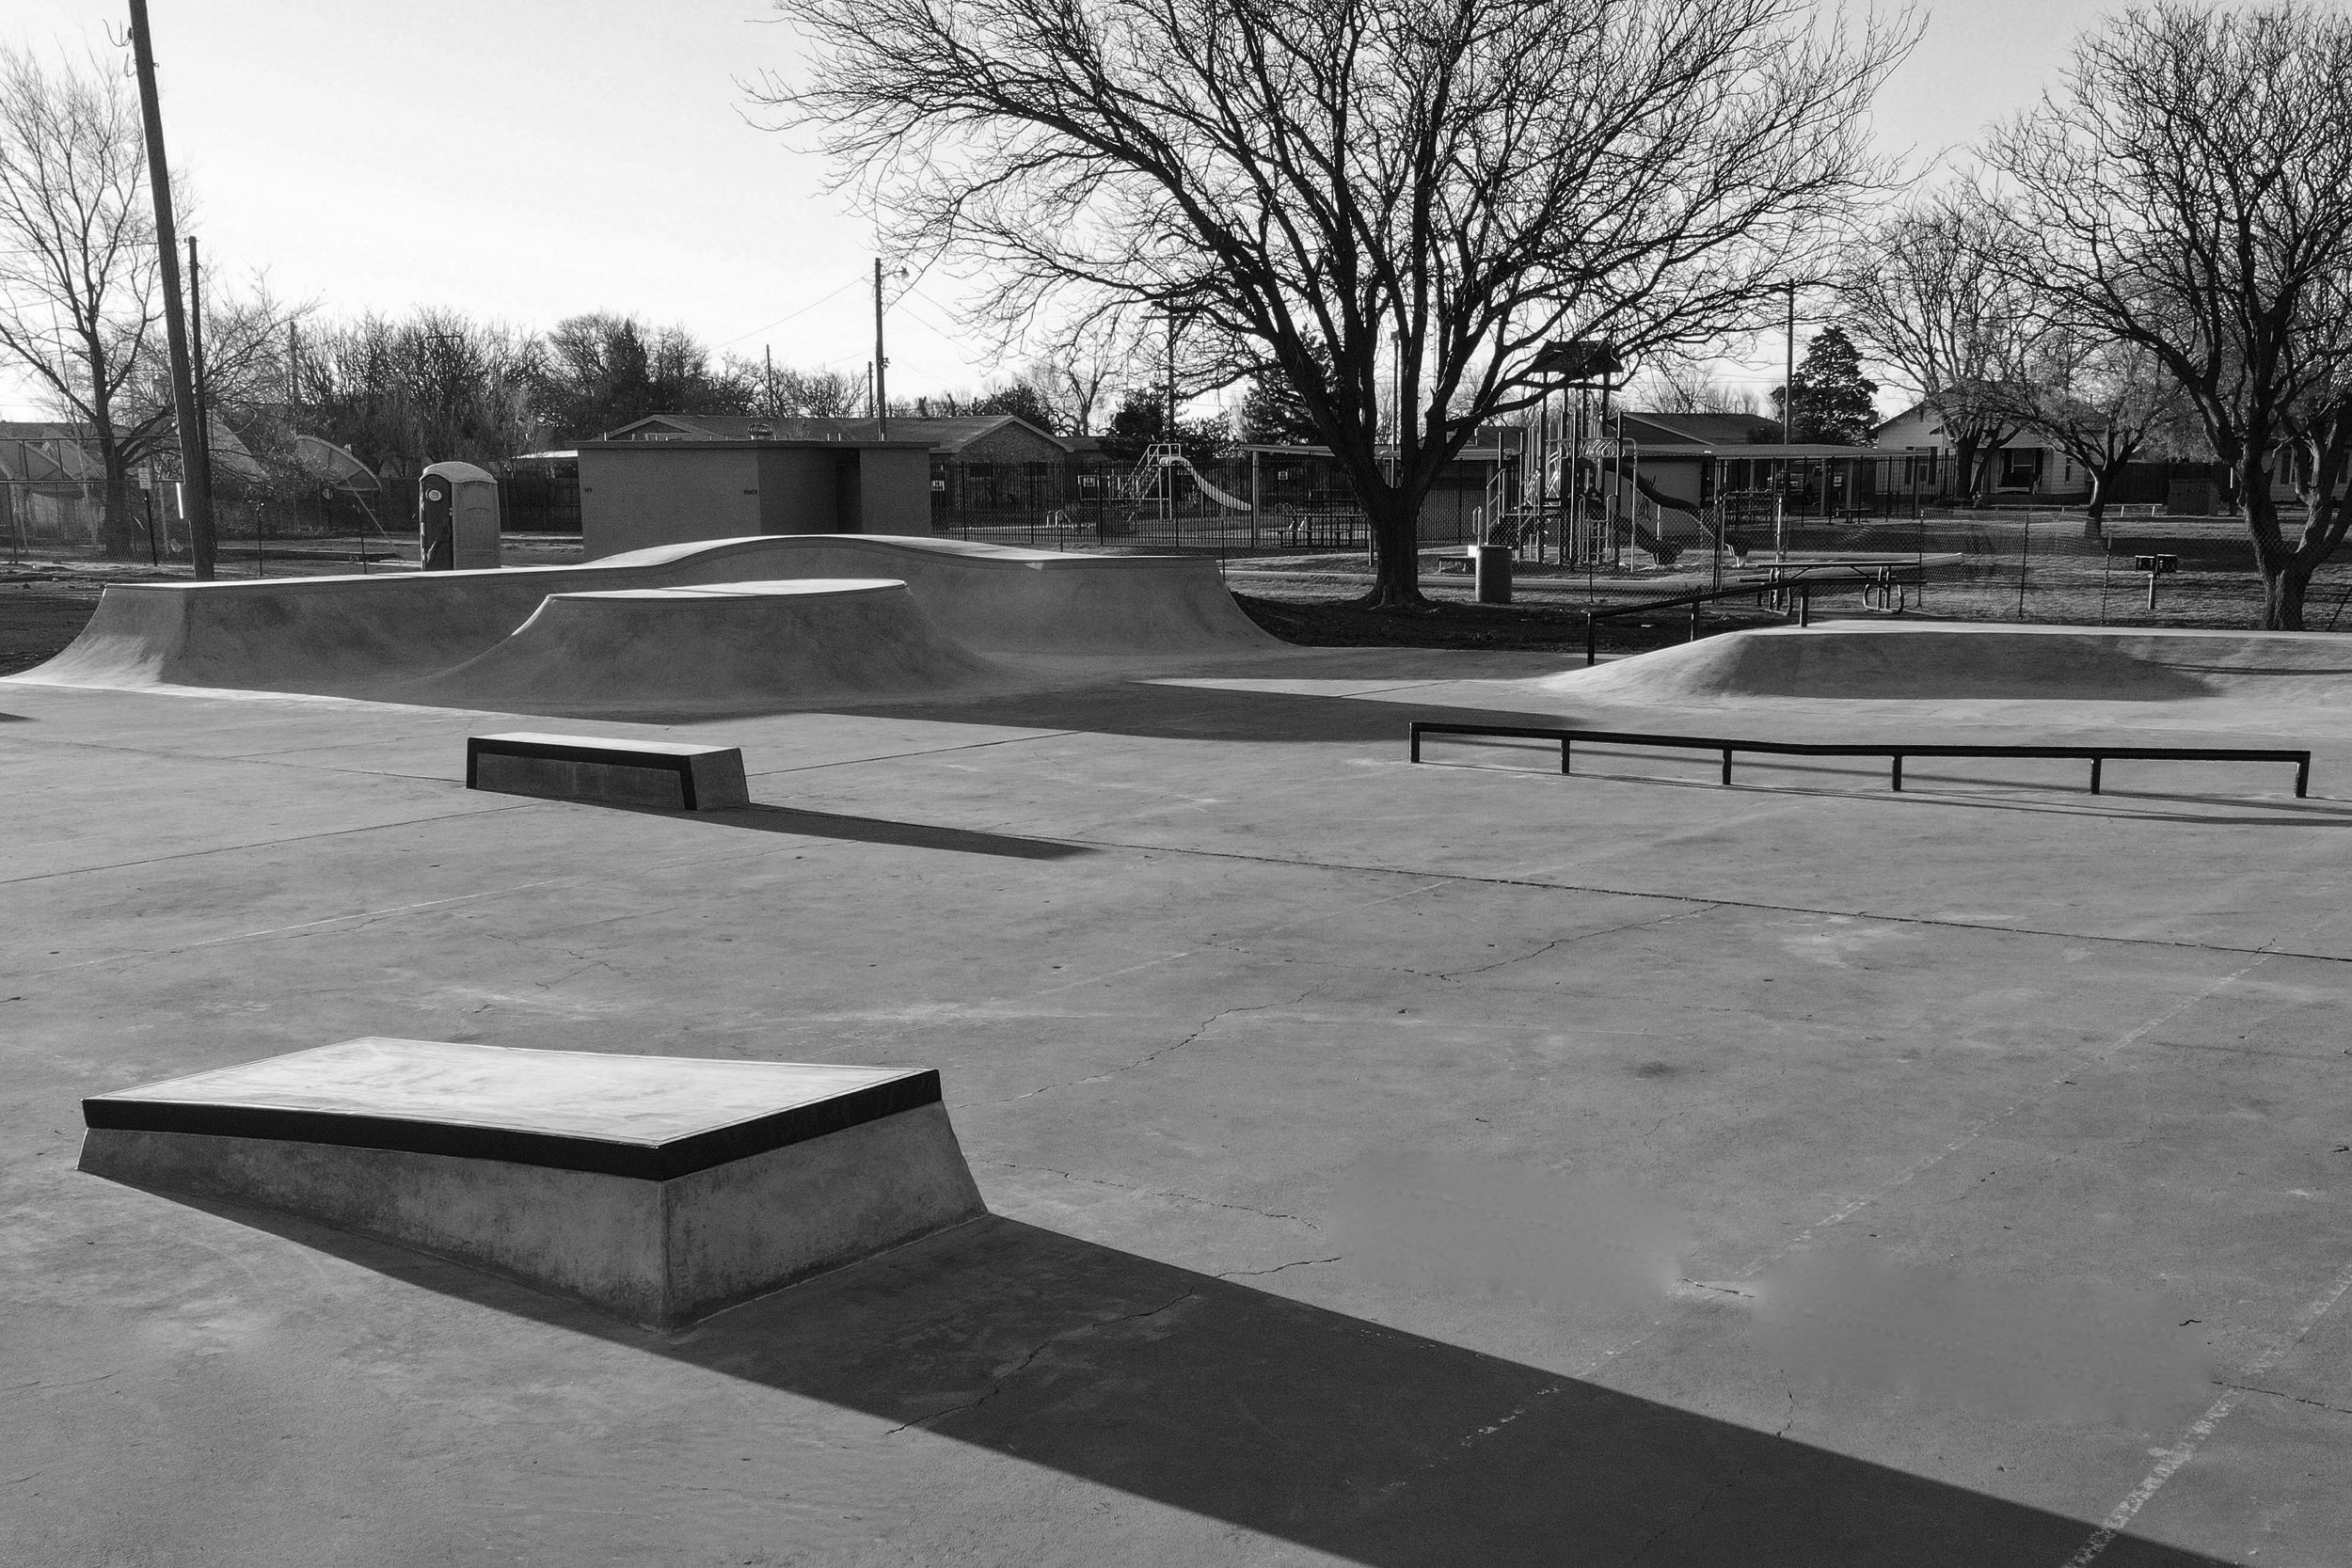 Idalou, Texas Skatepark ☀️a fun little park & another example of one of our #skateparkrecycling ♻️projects